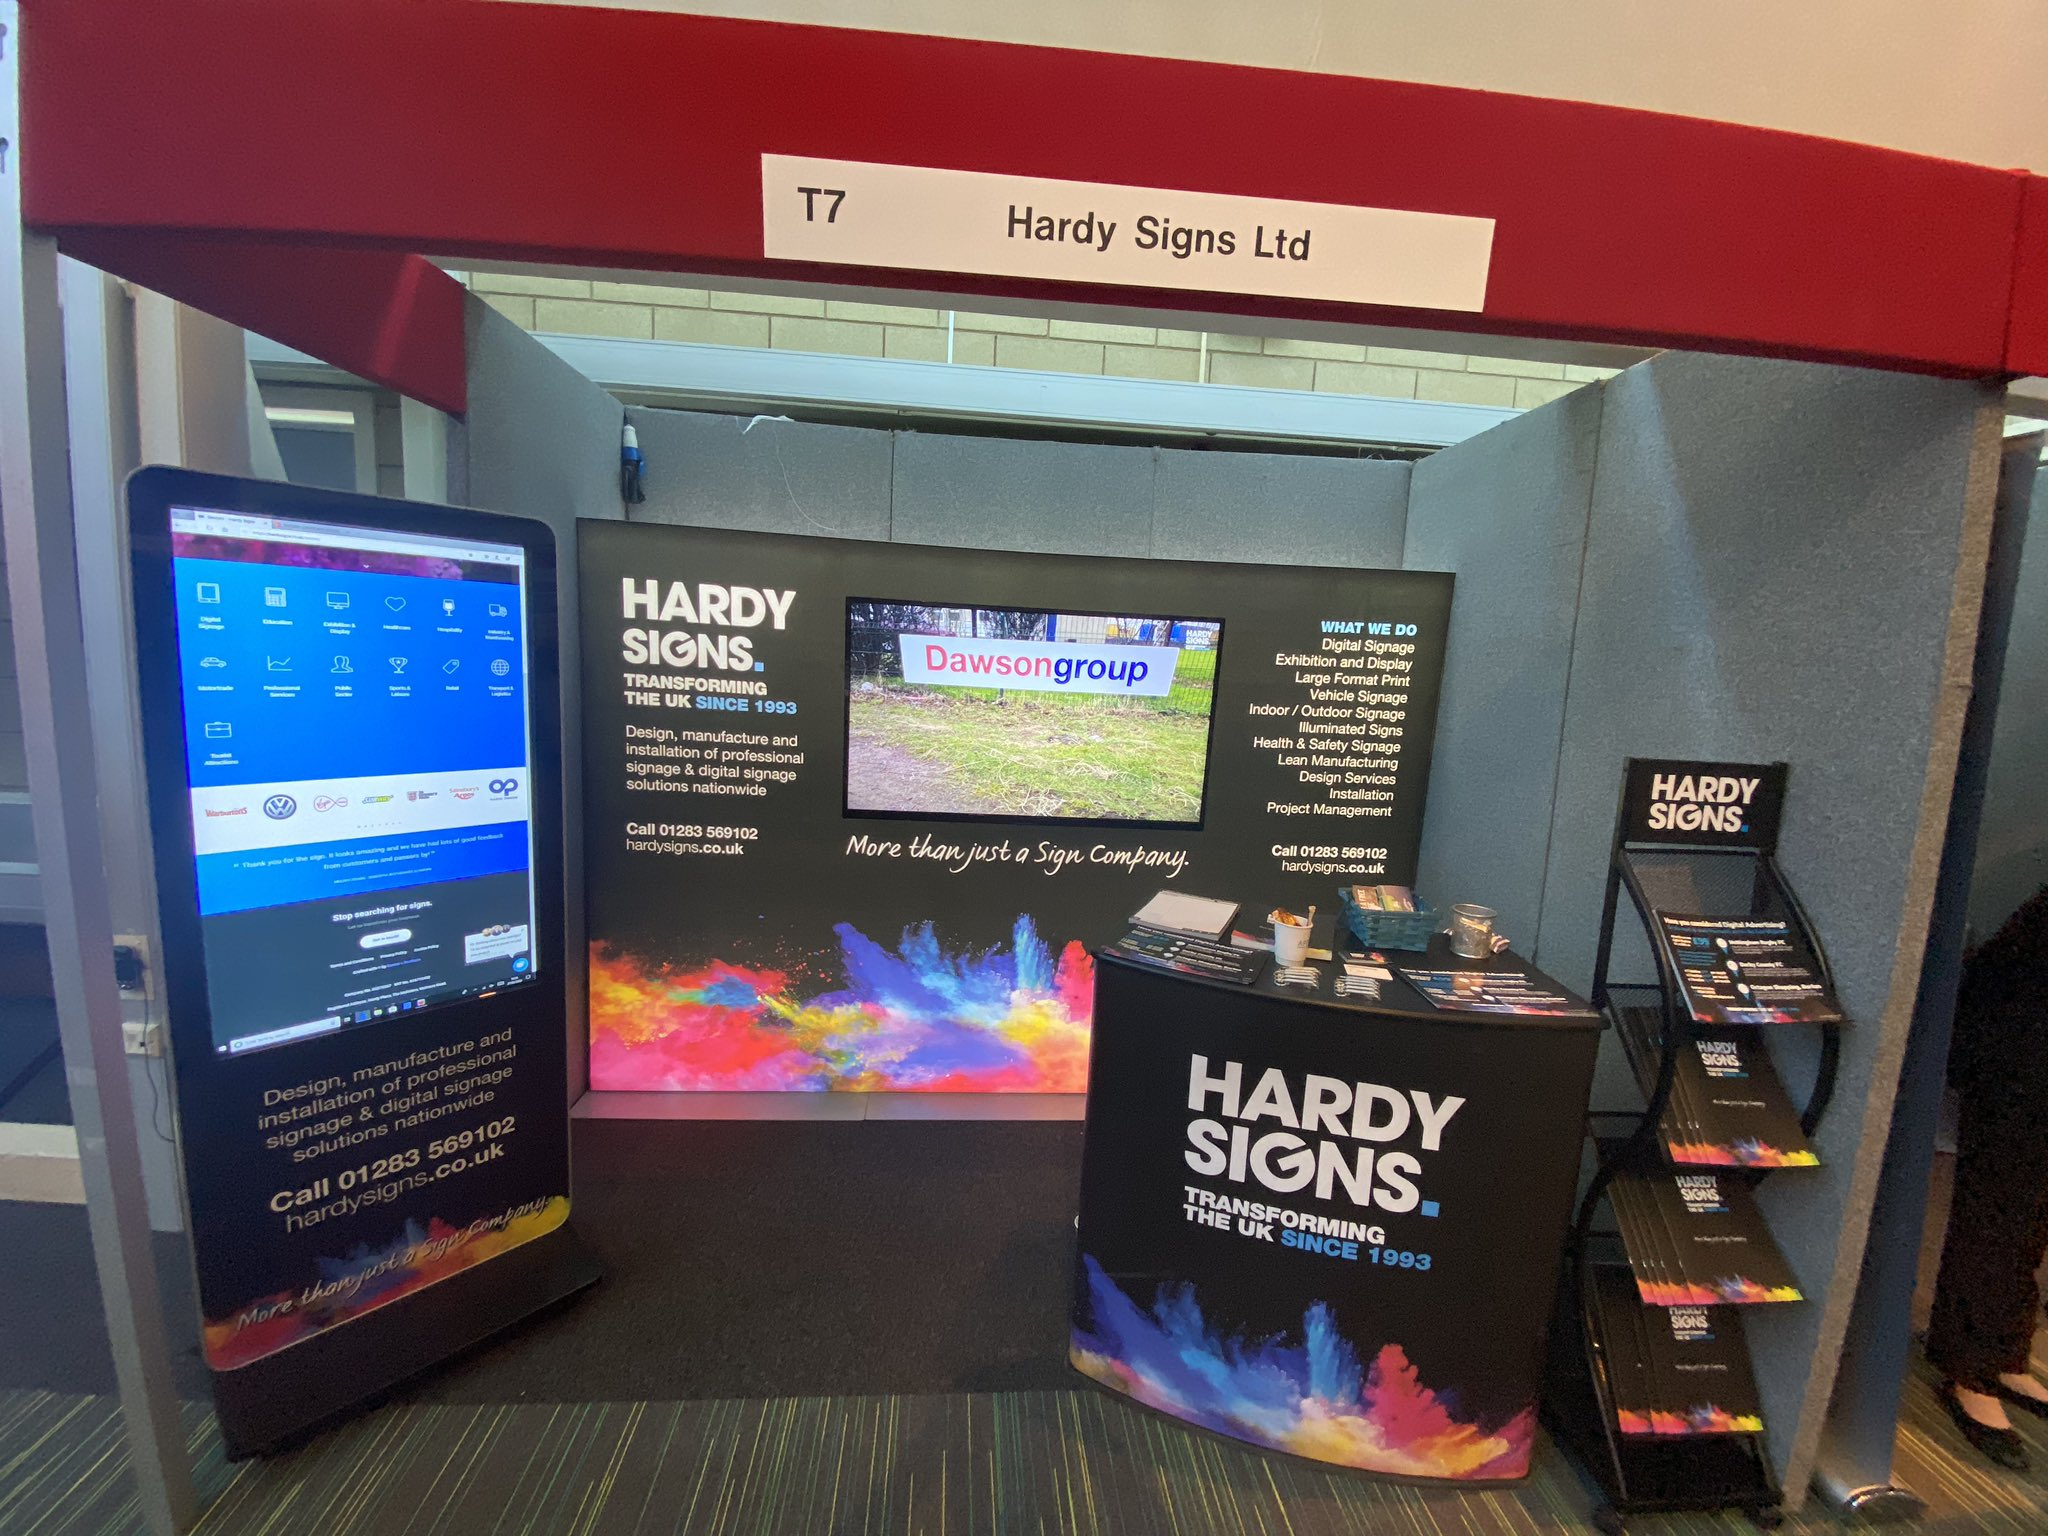 Hardy Signs Exhibiting at Love Business Expo 2022